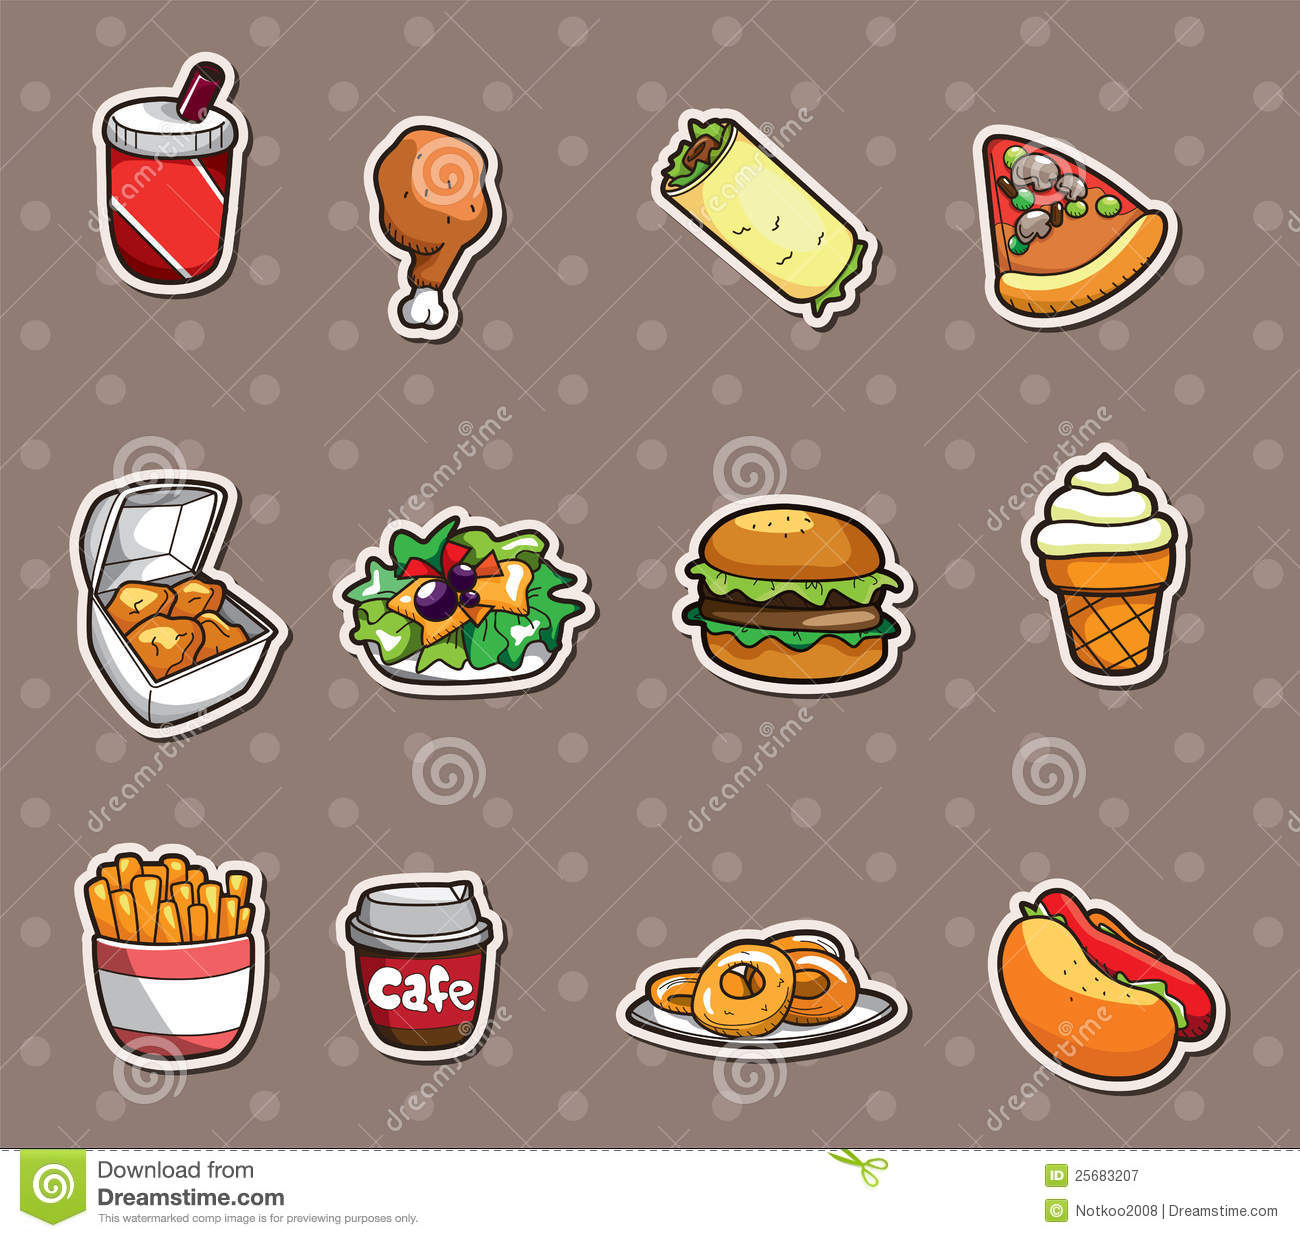 Fast Food Stickers Royalty Free Stock Photography